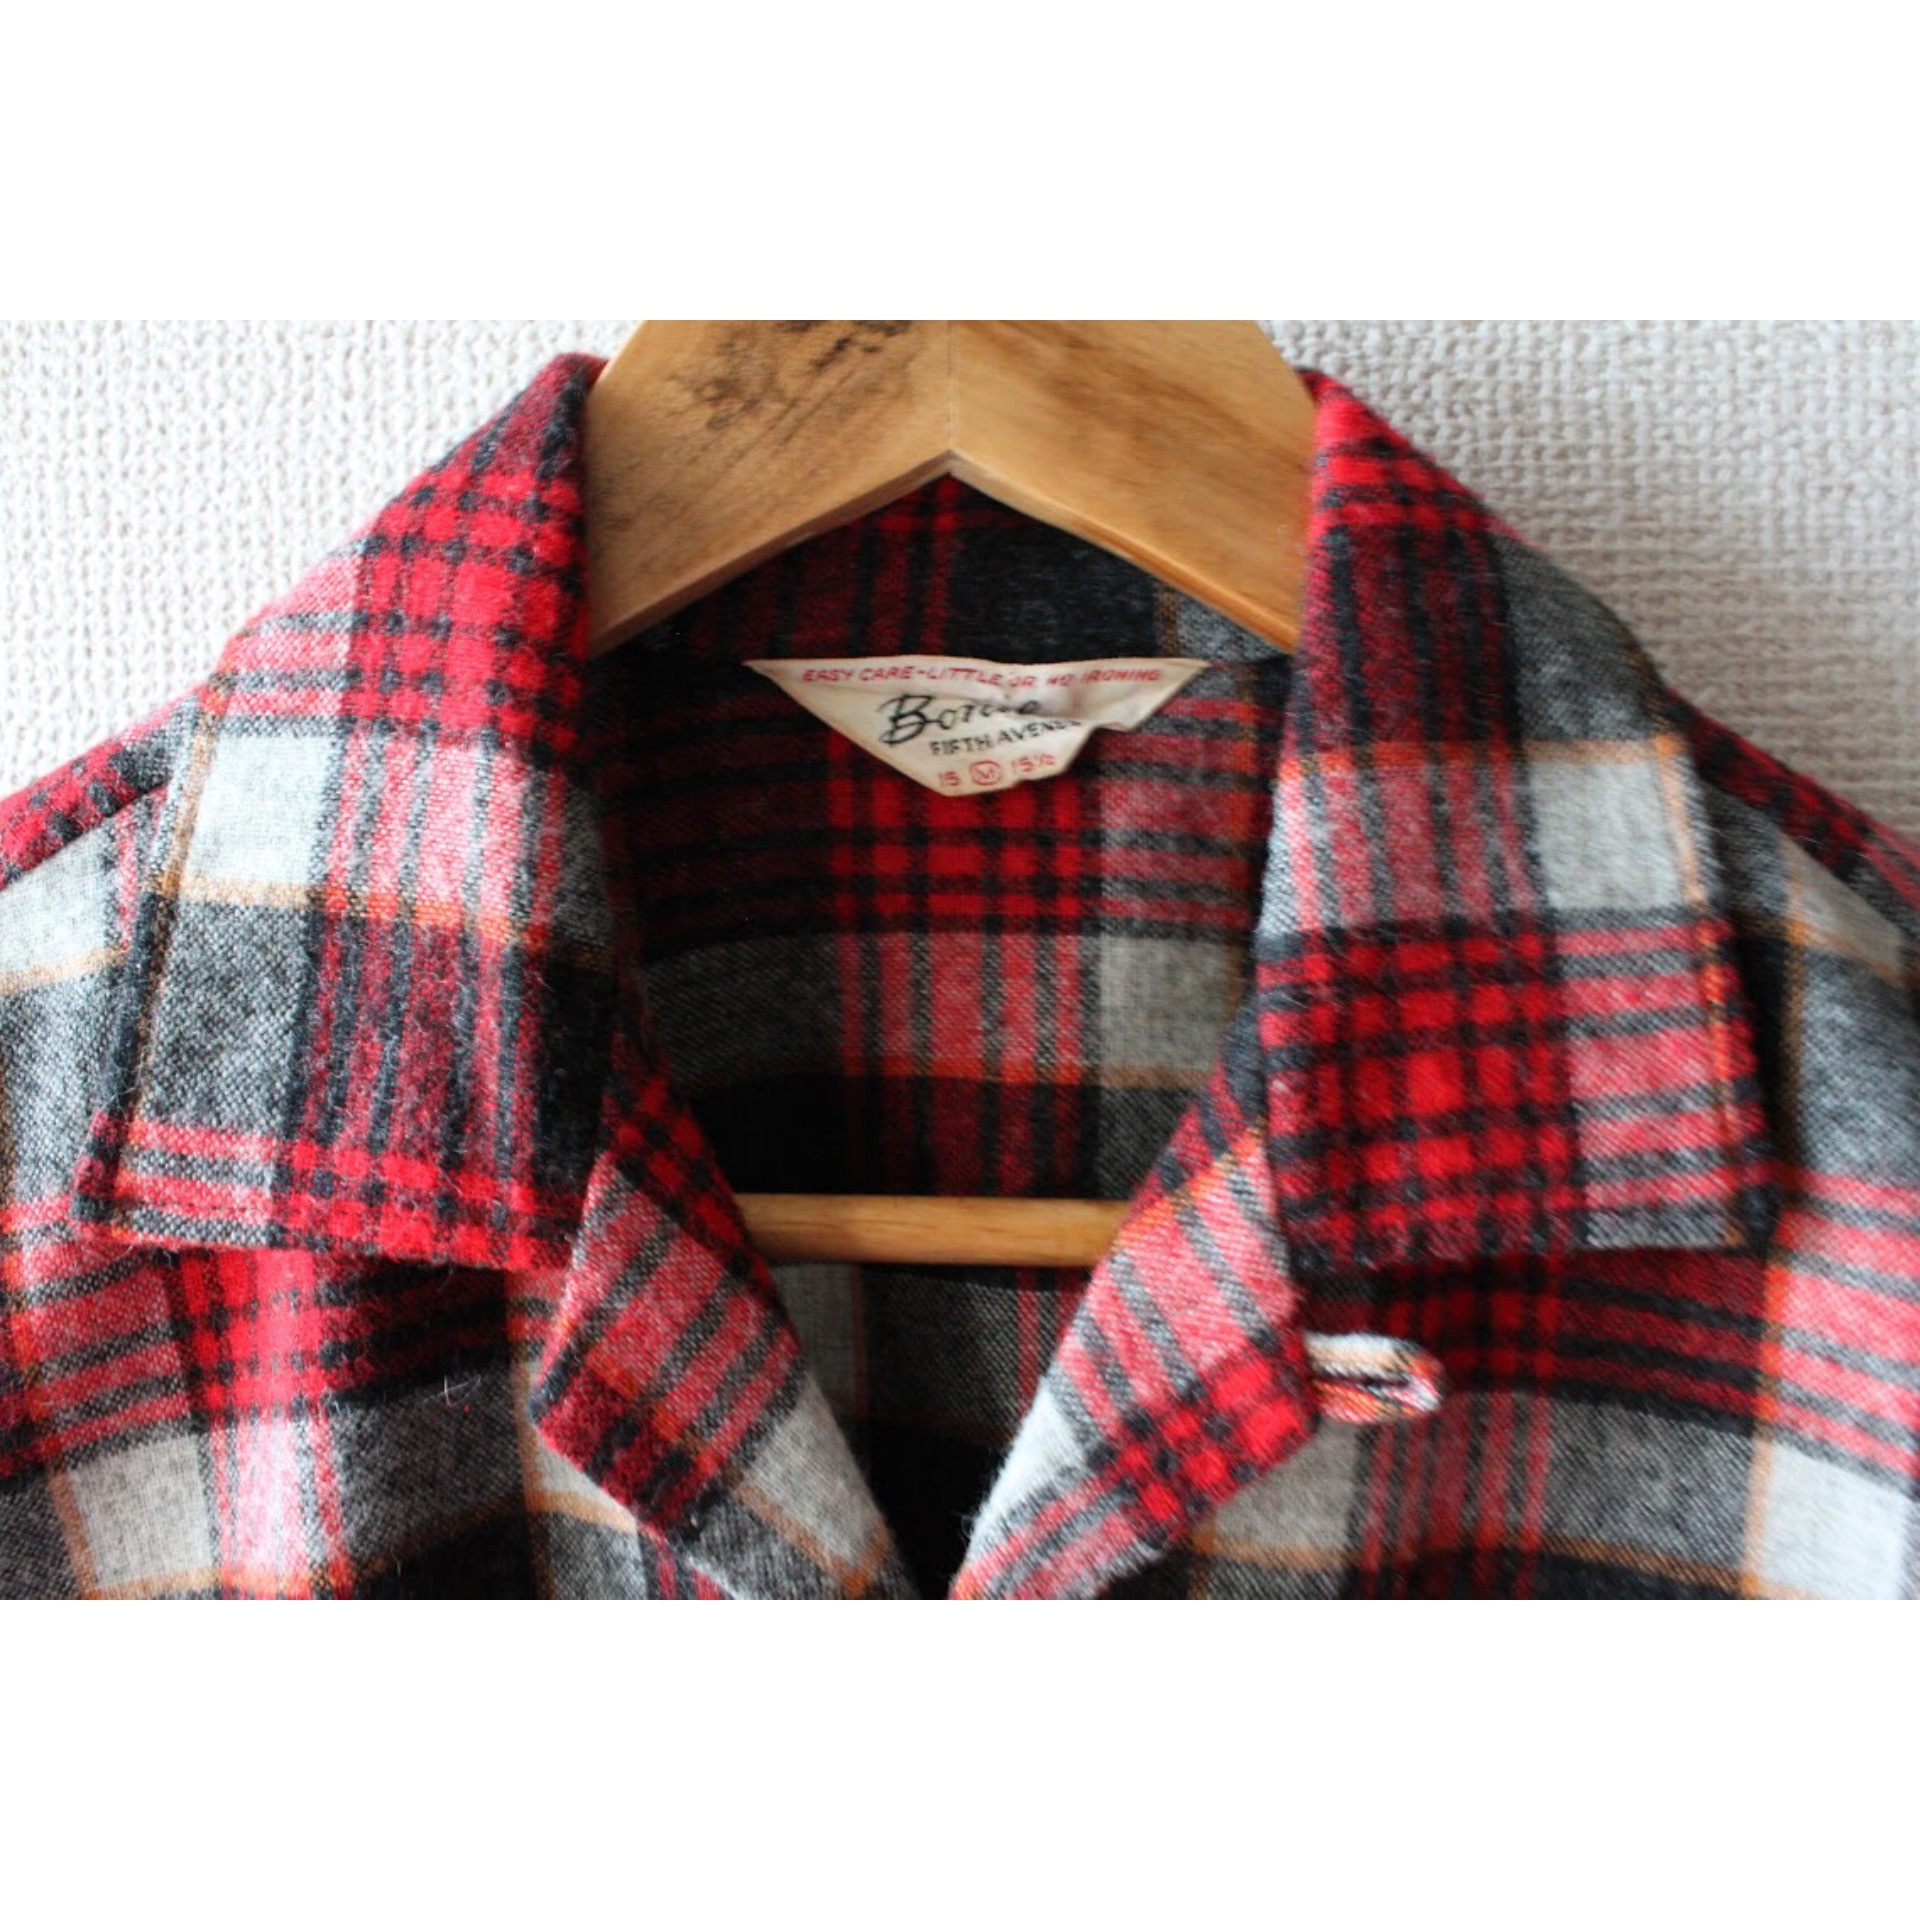 Vintage check wool open collar shirt